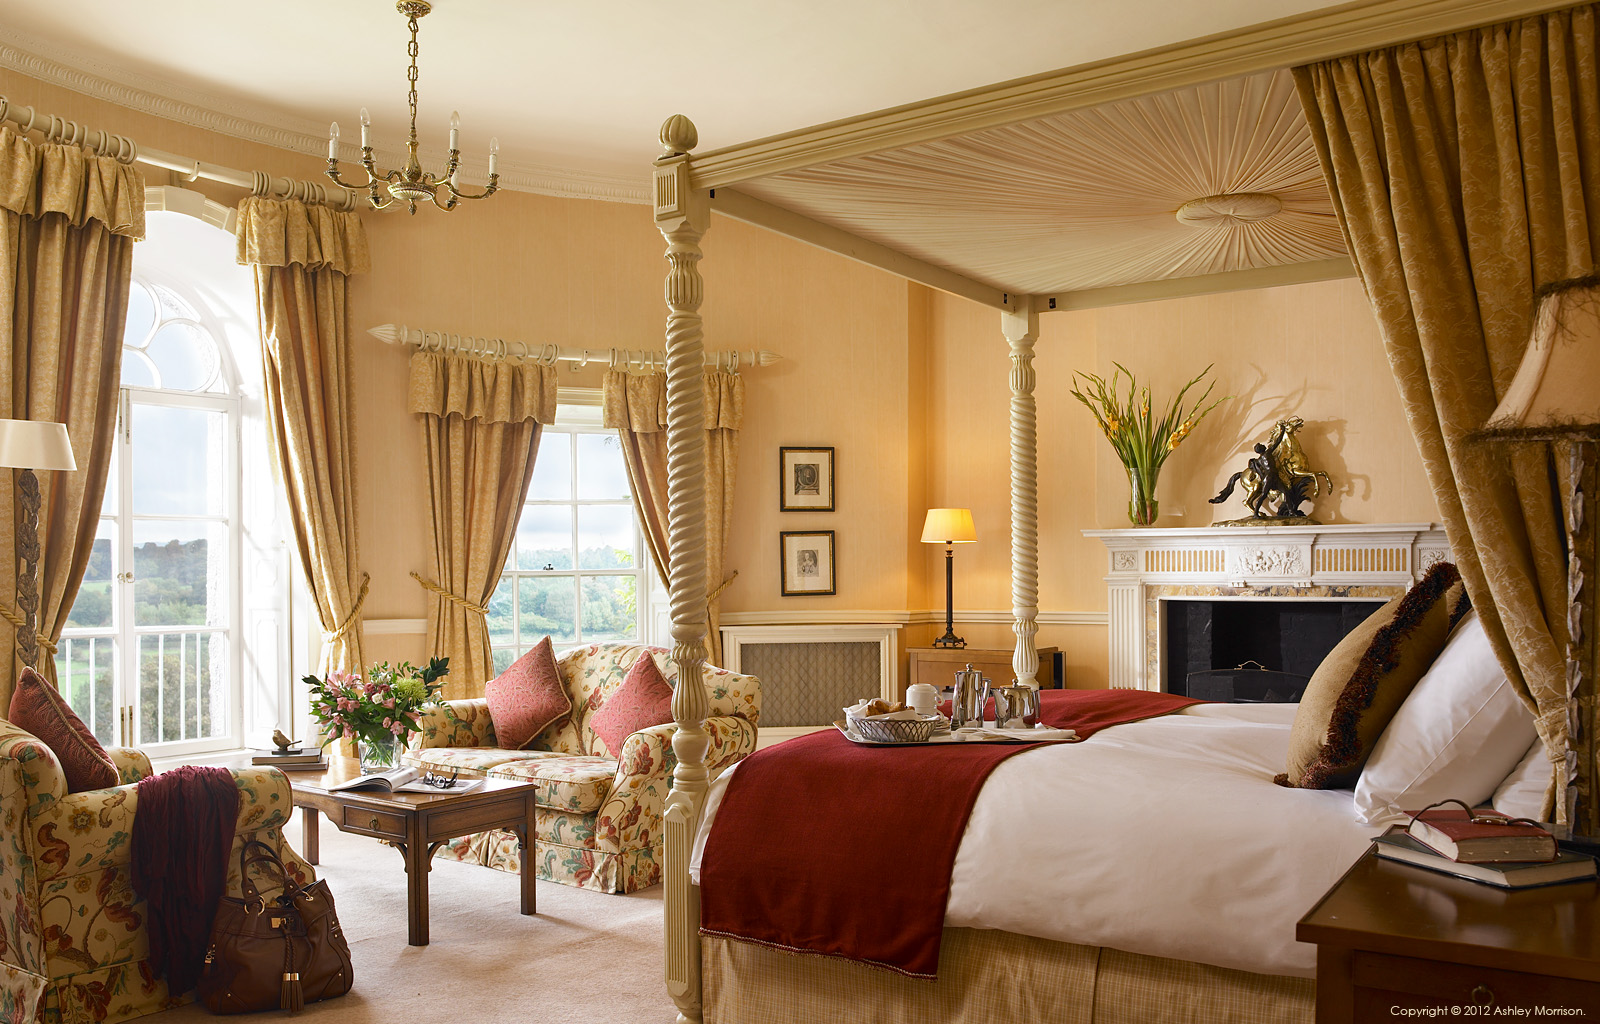 Bedroom Suite At Mount Juliet In County Kilkenny